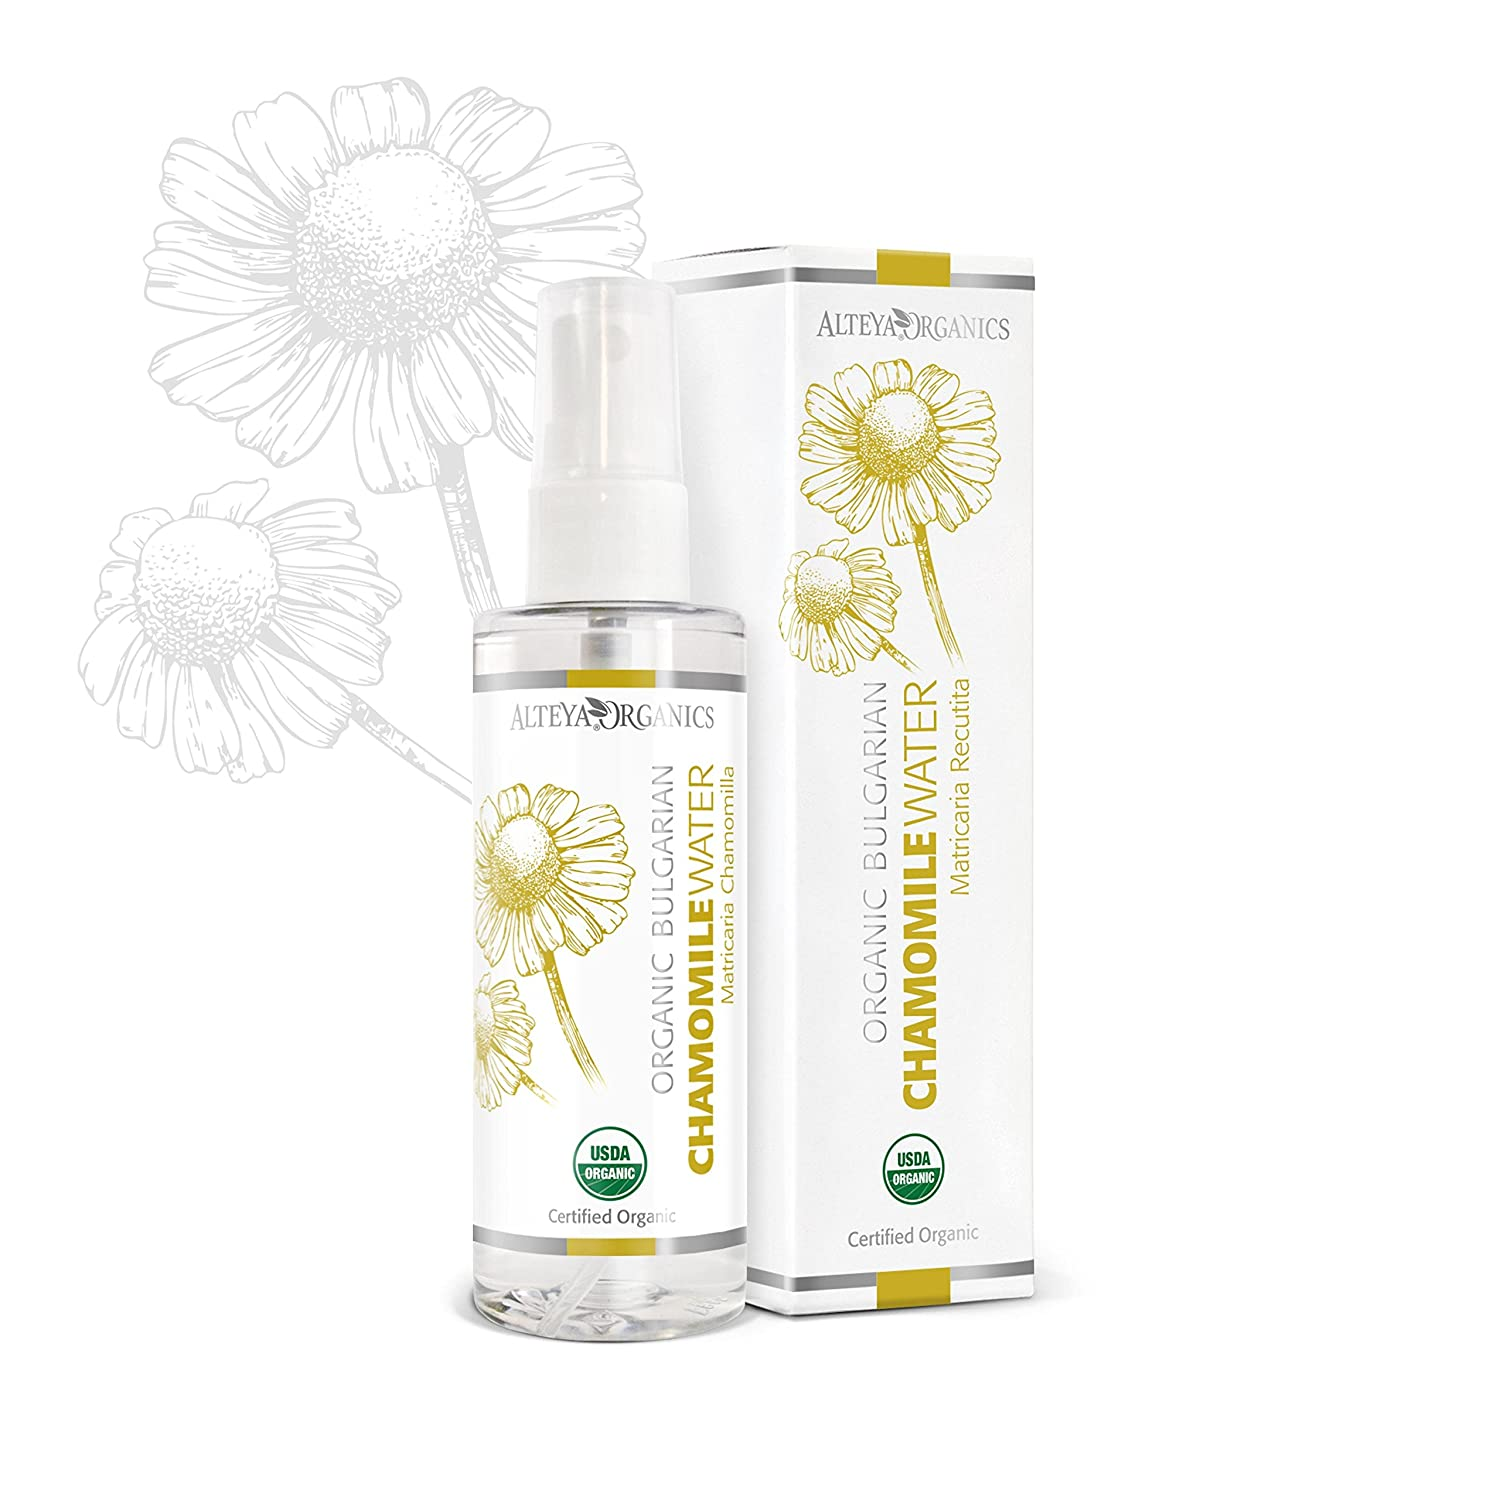 Alteya Organic Chamomile Water Spray 100 ml - USDA Certified Organic Pure Bio Natural Floral Water Steam-Distilled from Fresh Hand Picked Matricaria Chamomilla Flowers - Brightening, Hydrating, Soothing and Calming Alteya Organics 9000